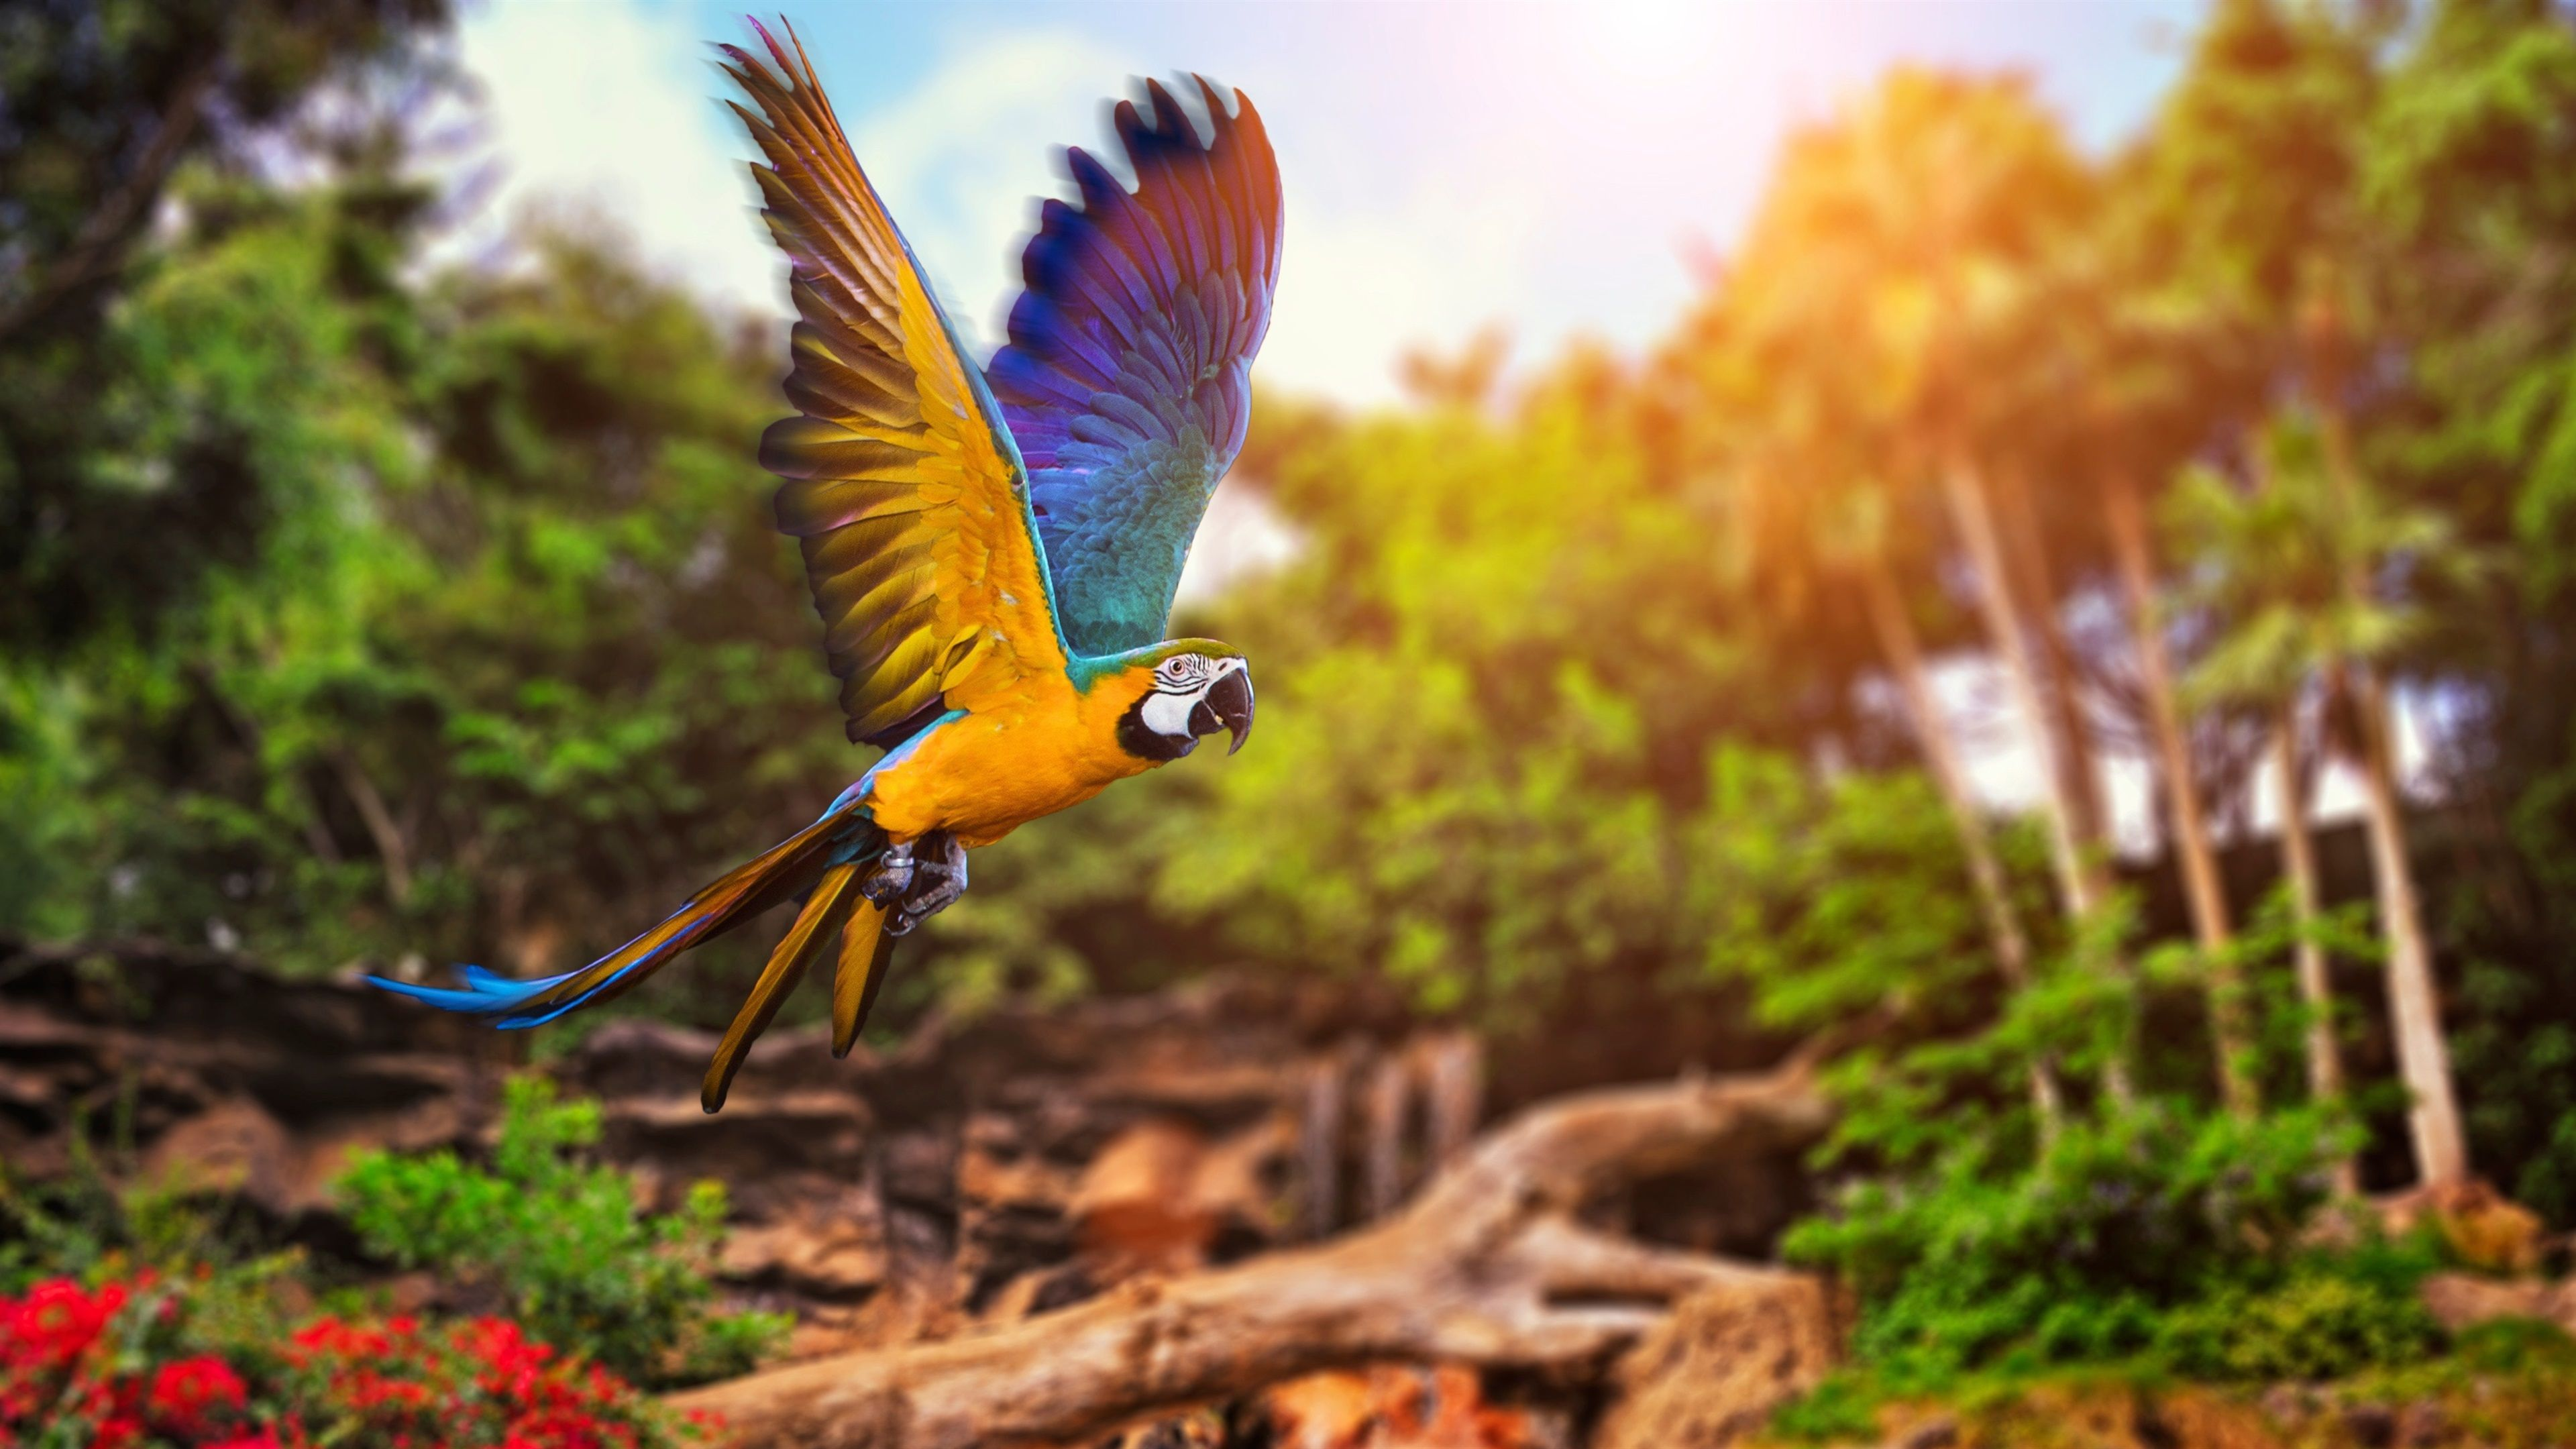 Parrot Flying In Forest Wallpaper 3840x2160 Uhd 4k Parrot